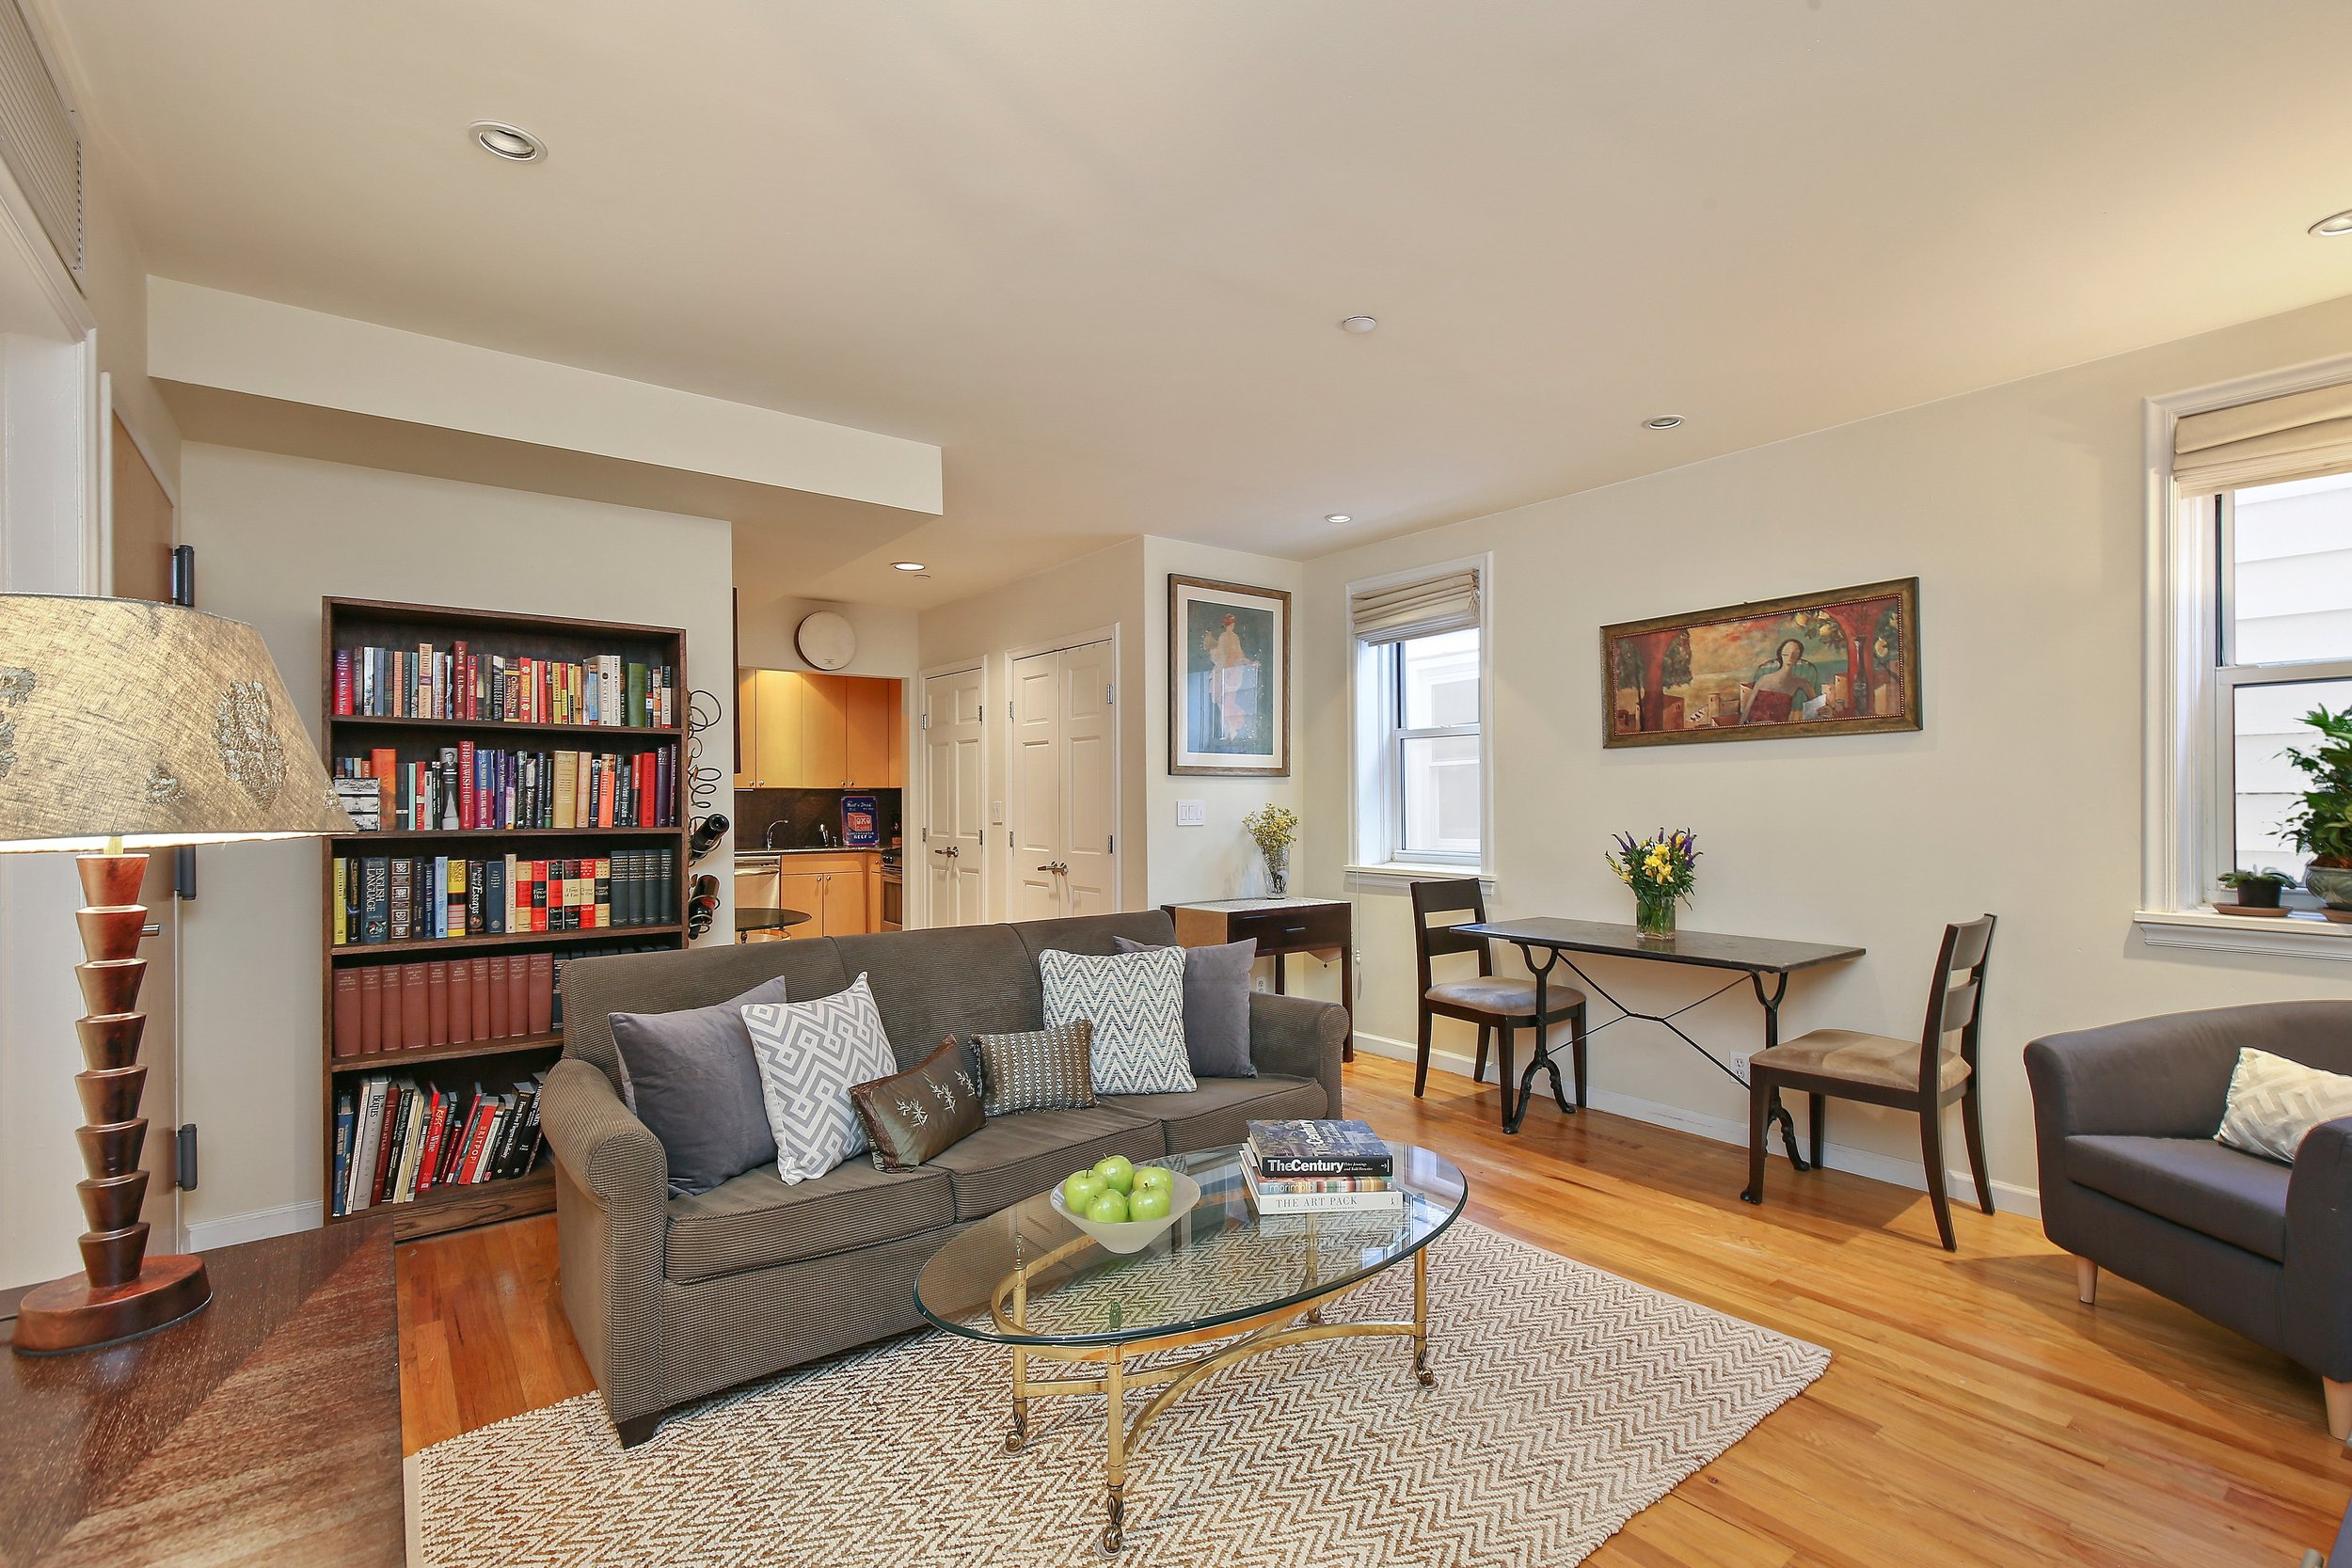 392 11th Street - Apt. 2B, Park Slope, BK